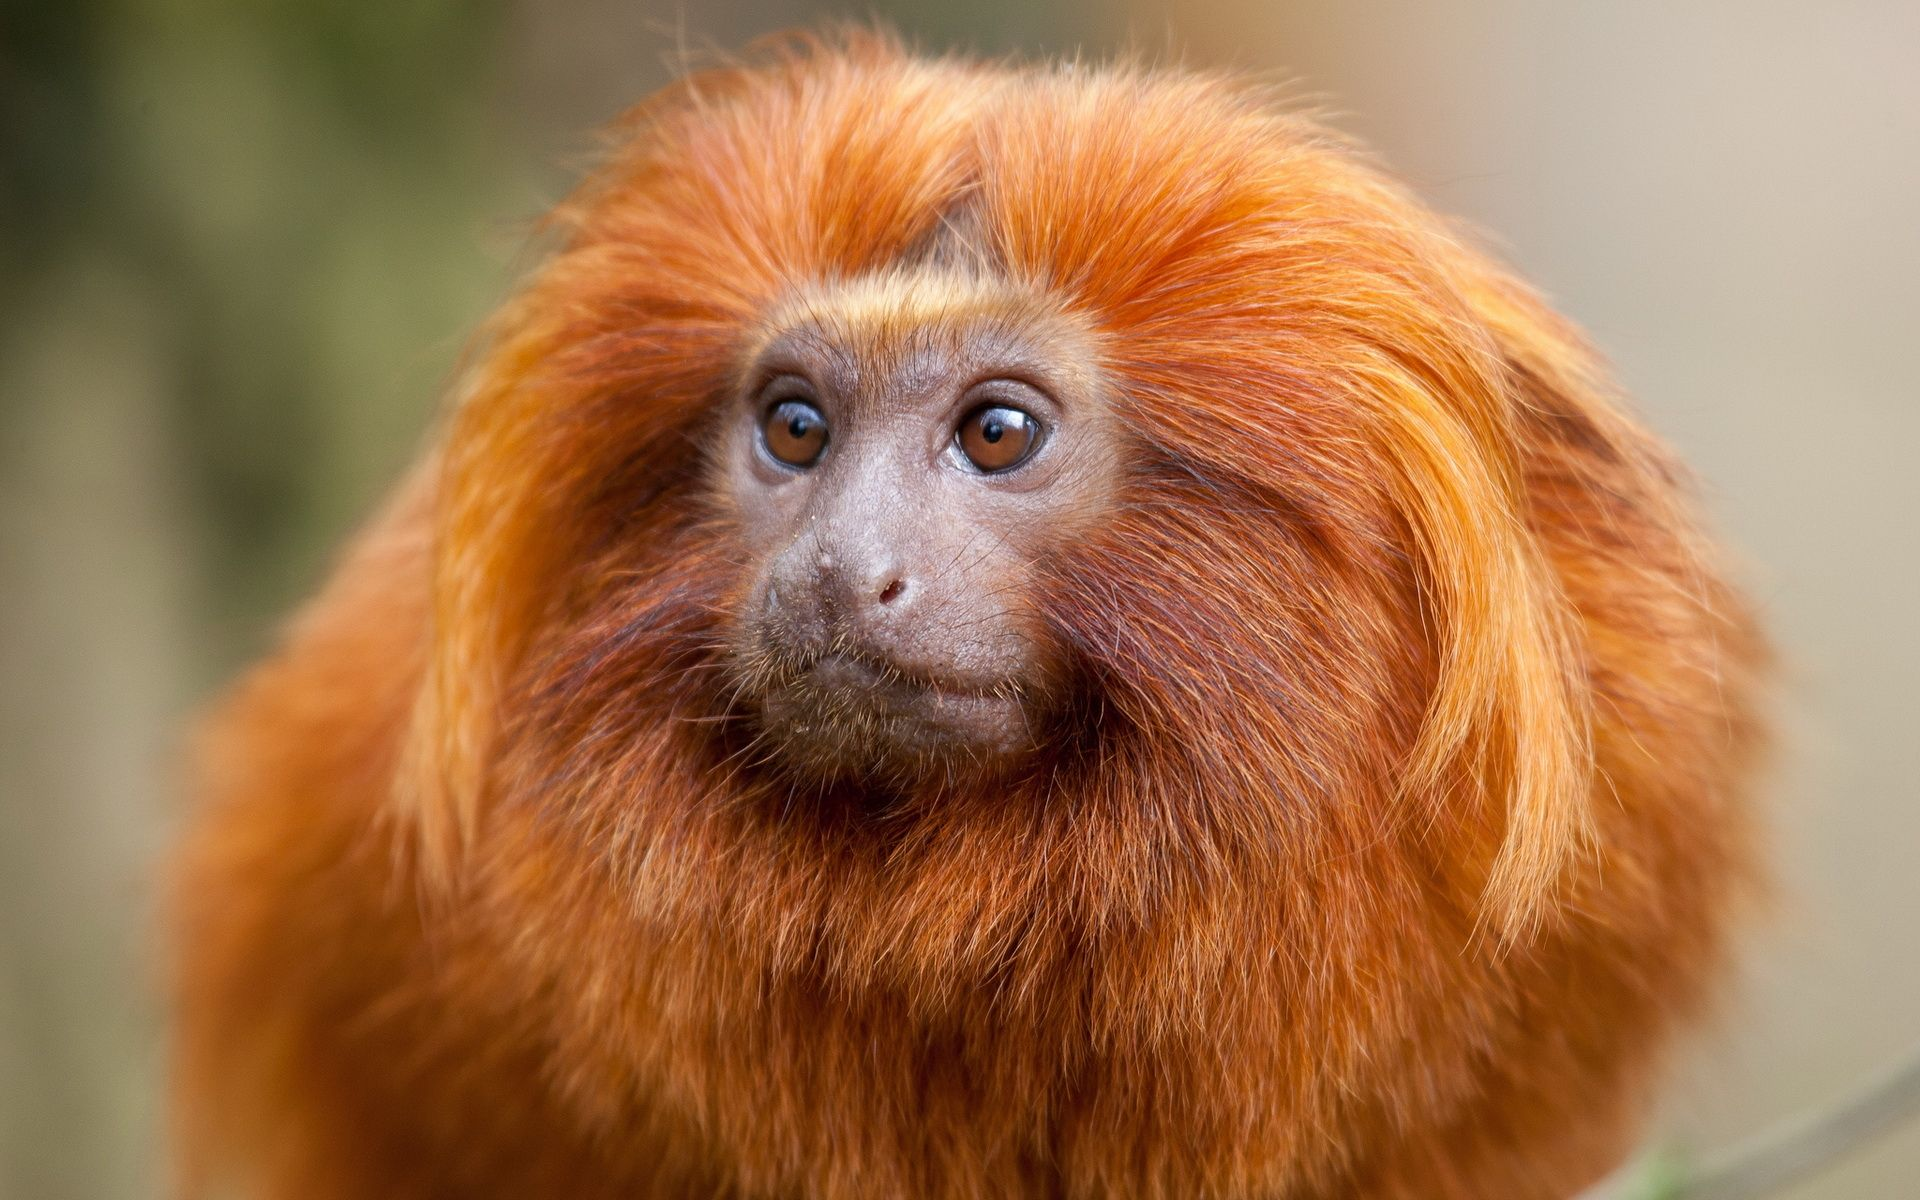 red monkey orange with long hair all animals pinterest. Black Bedroom Furniture Sets. Home Design Ideas